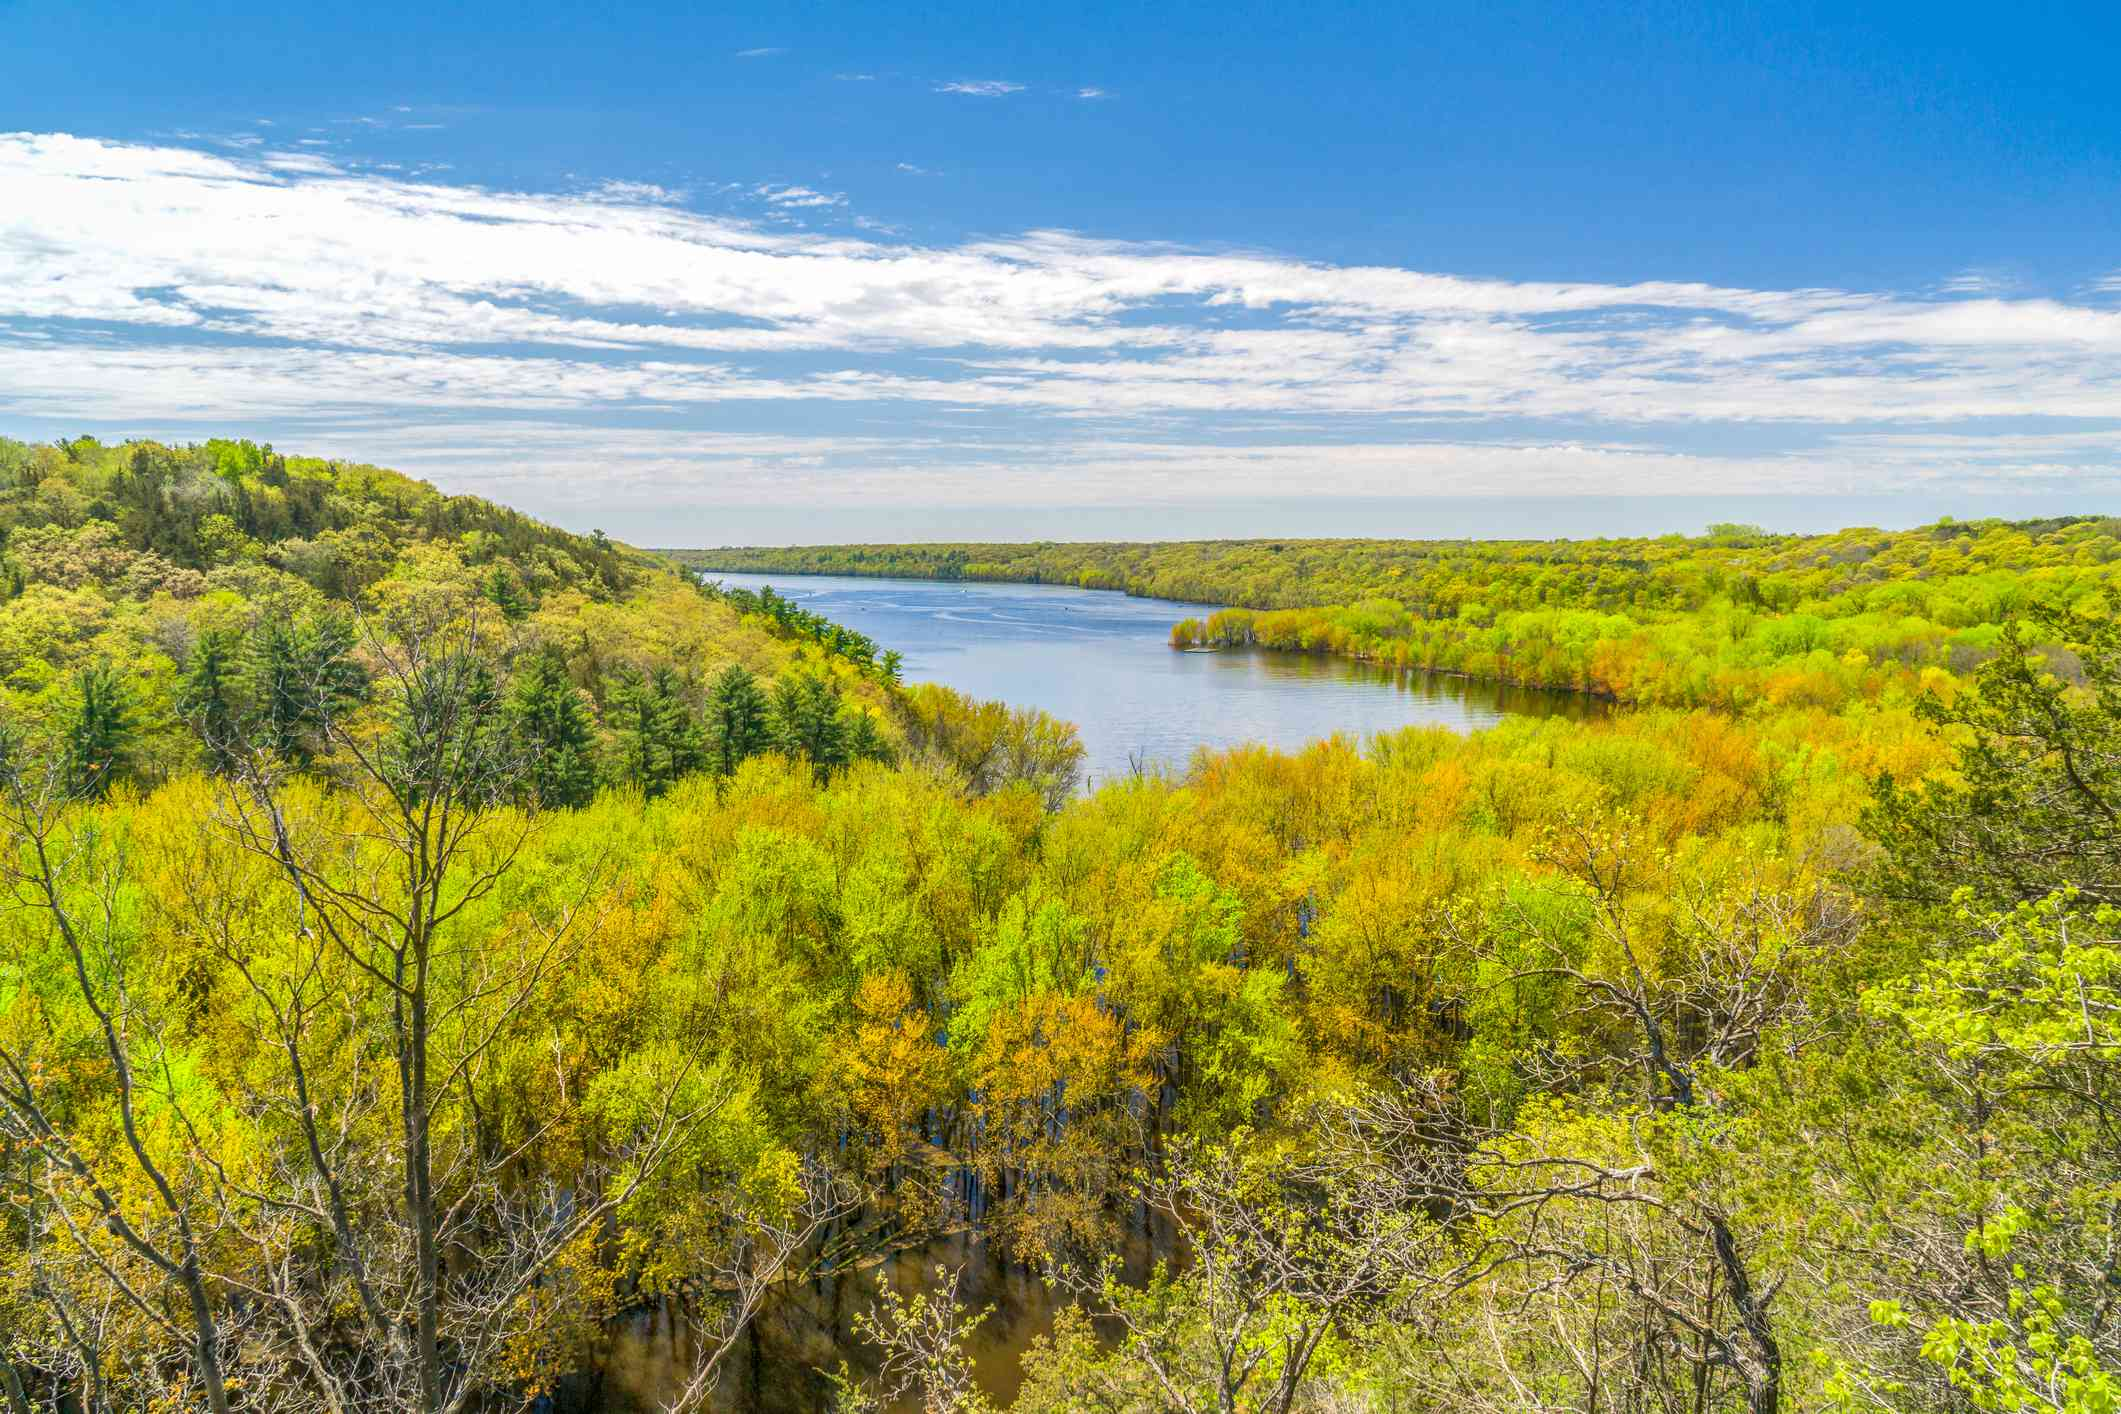 The St. Croix River Valley with fall colors